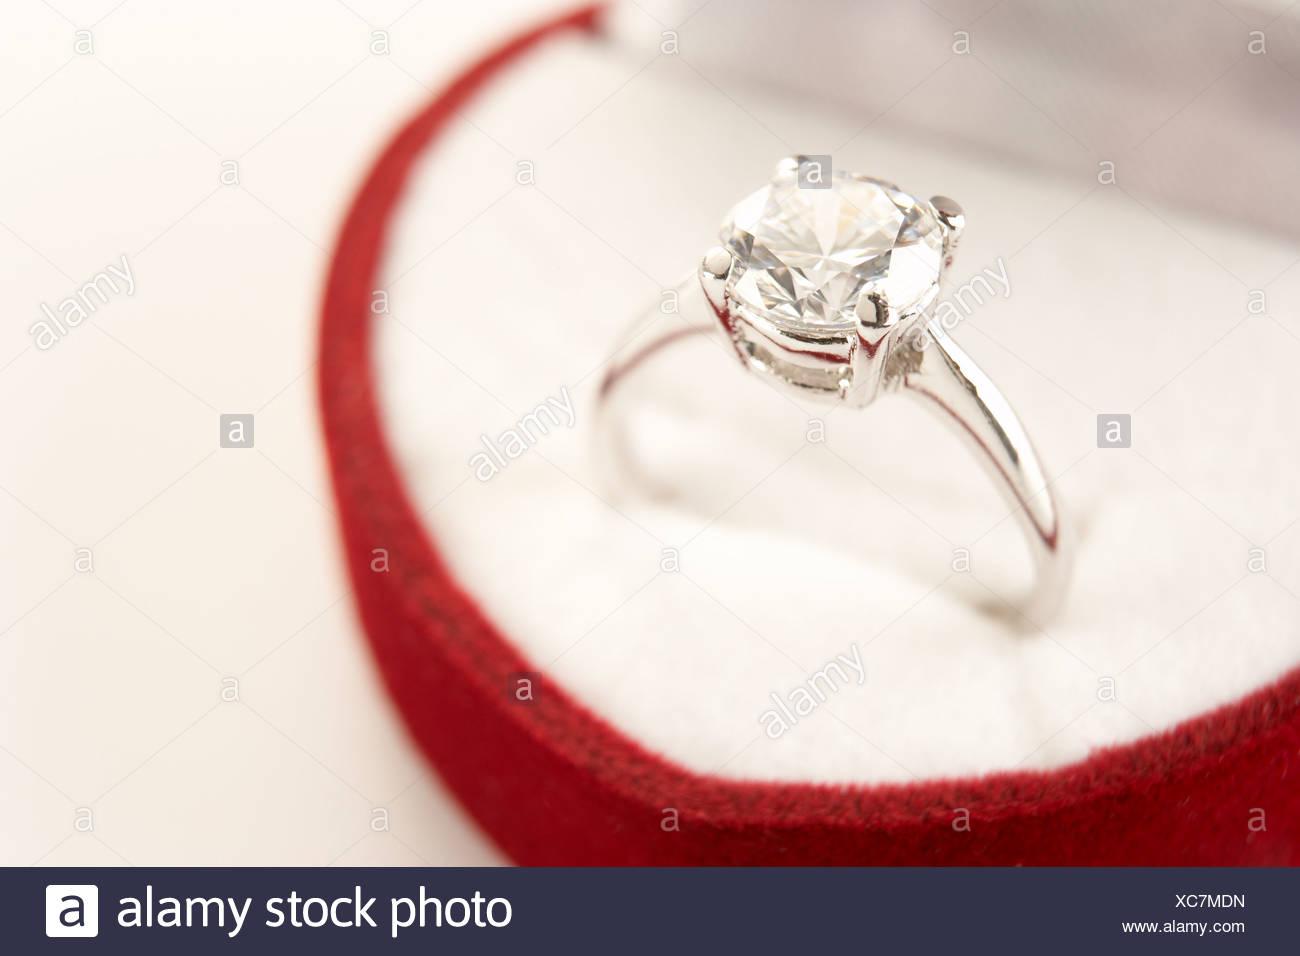 Heart of england stock photos heart of england stock for Heart shaped engagement ring box